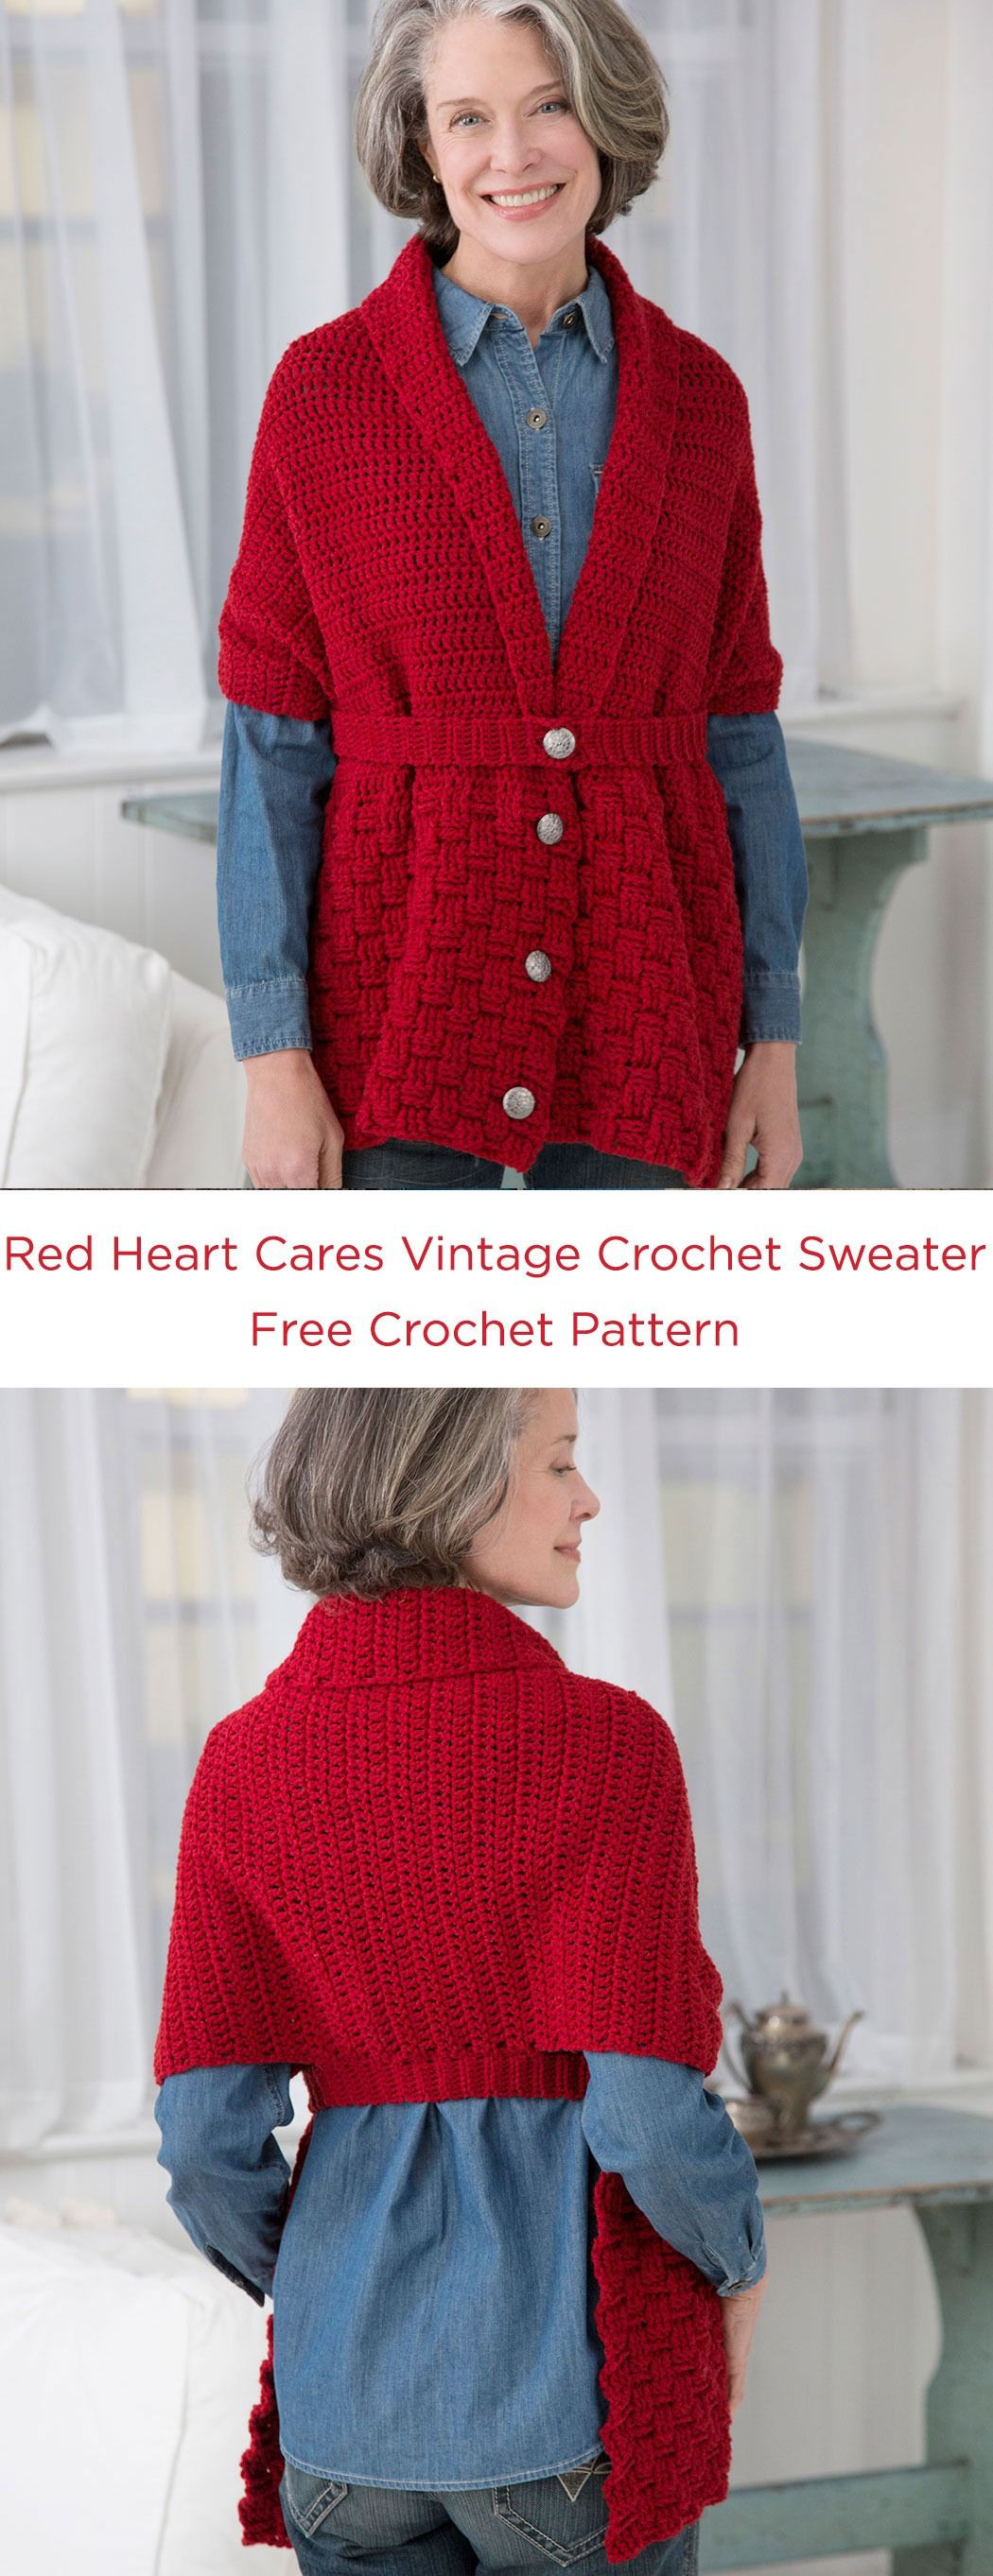 Lovely Red Heart Cares Vintage Crochet Sweater Free Crochet Red Heart Sweater Of Lovely 32 Ideas Red Heart Sweater